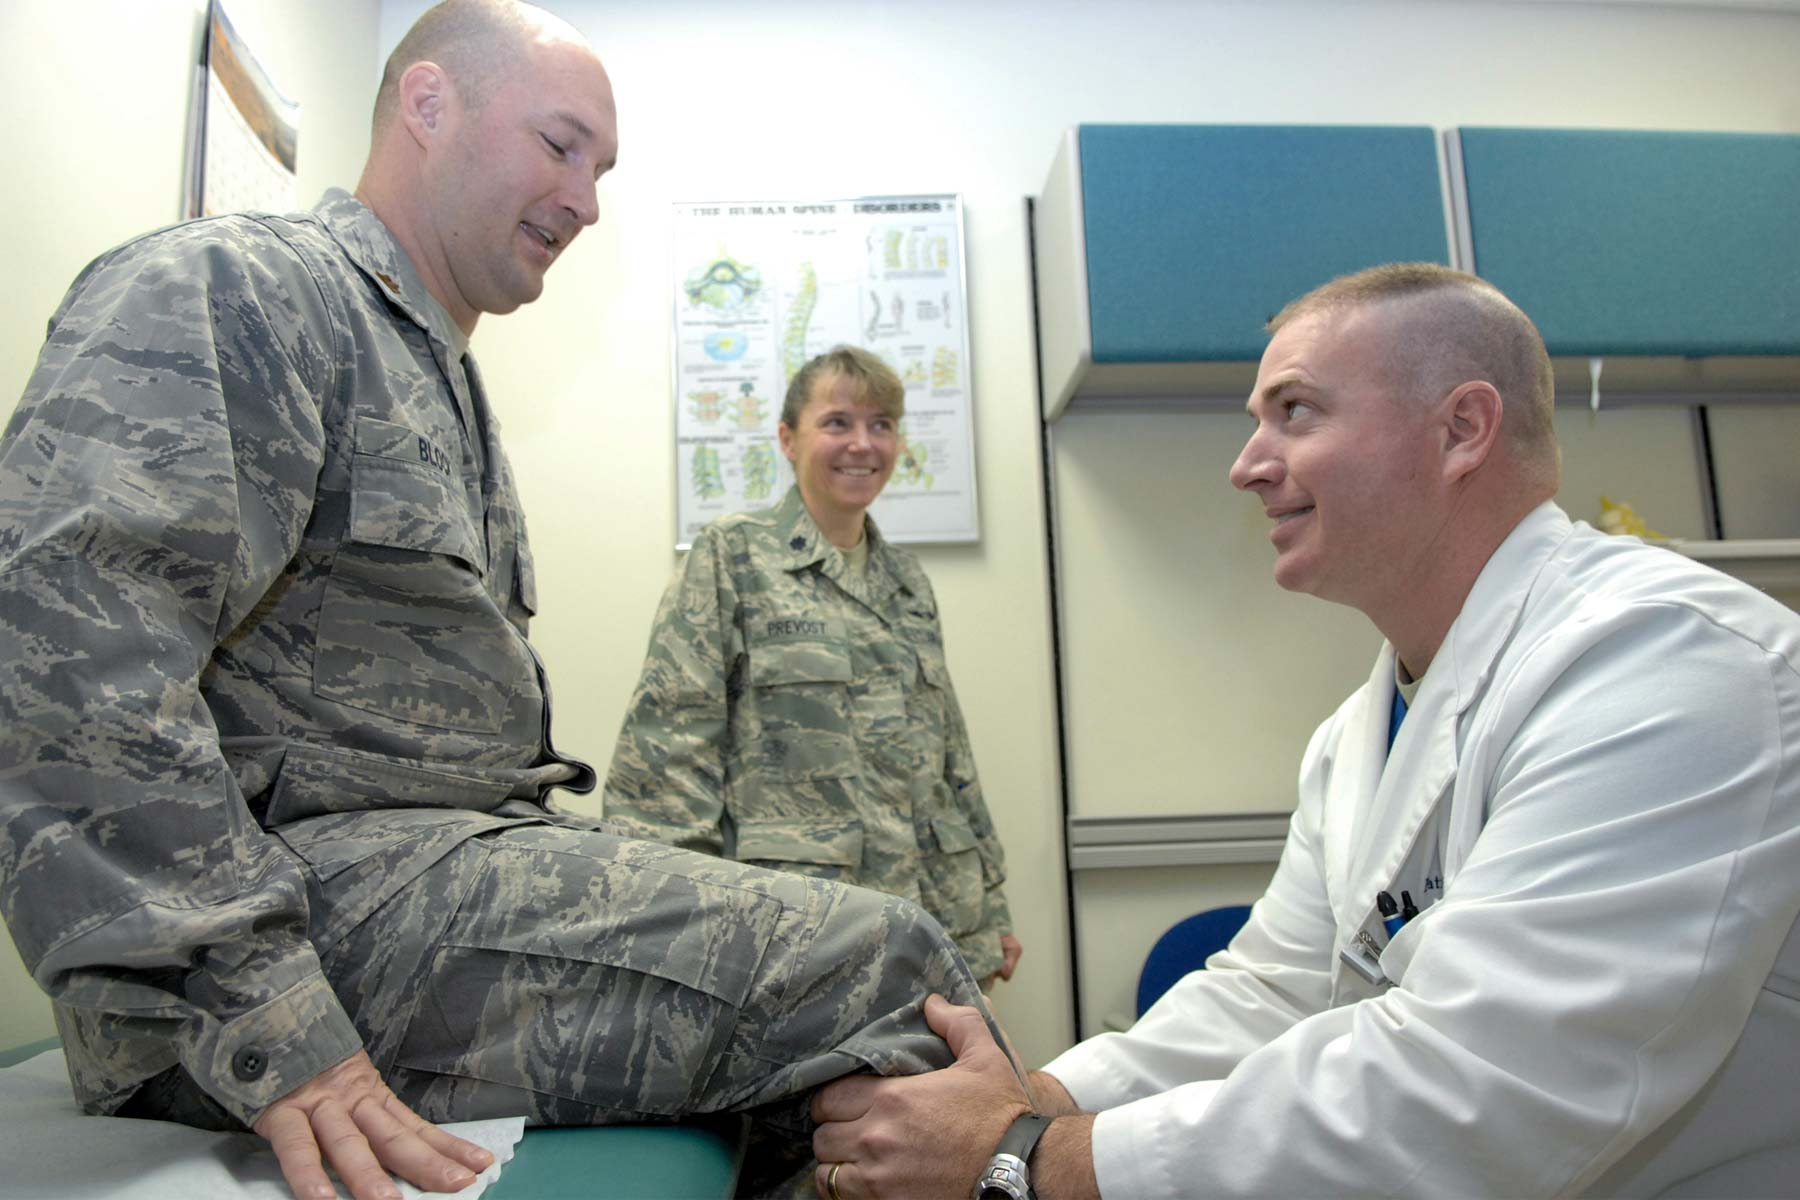 Military Medical Benefits Overview | Military com